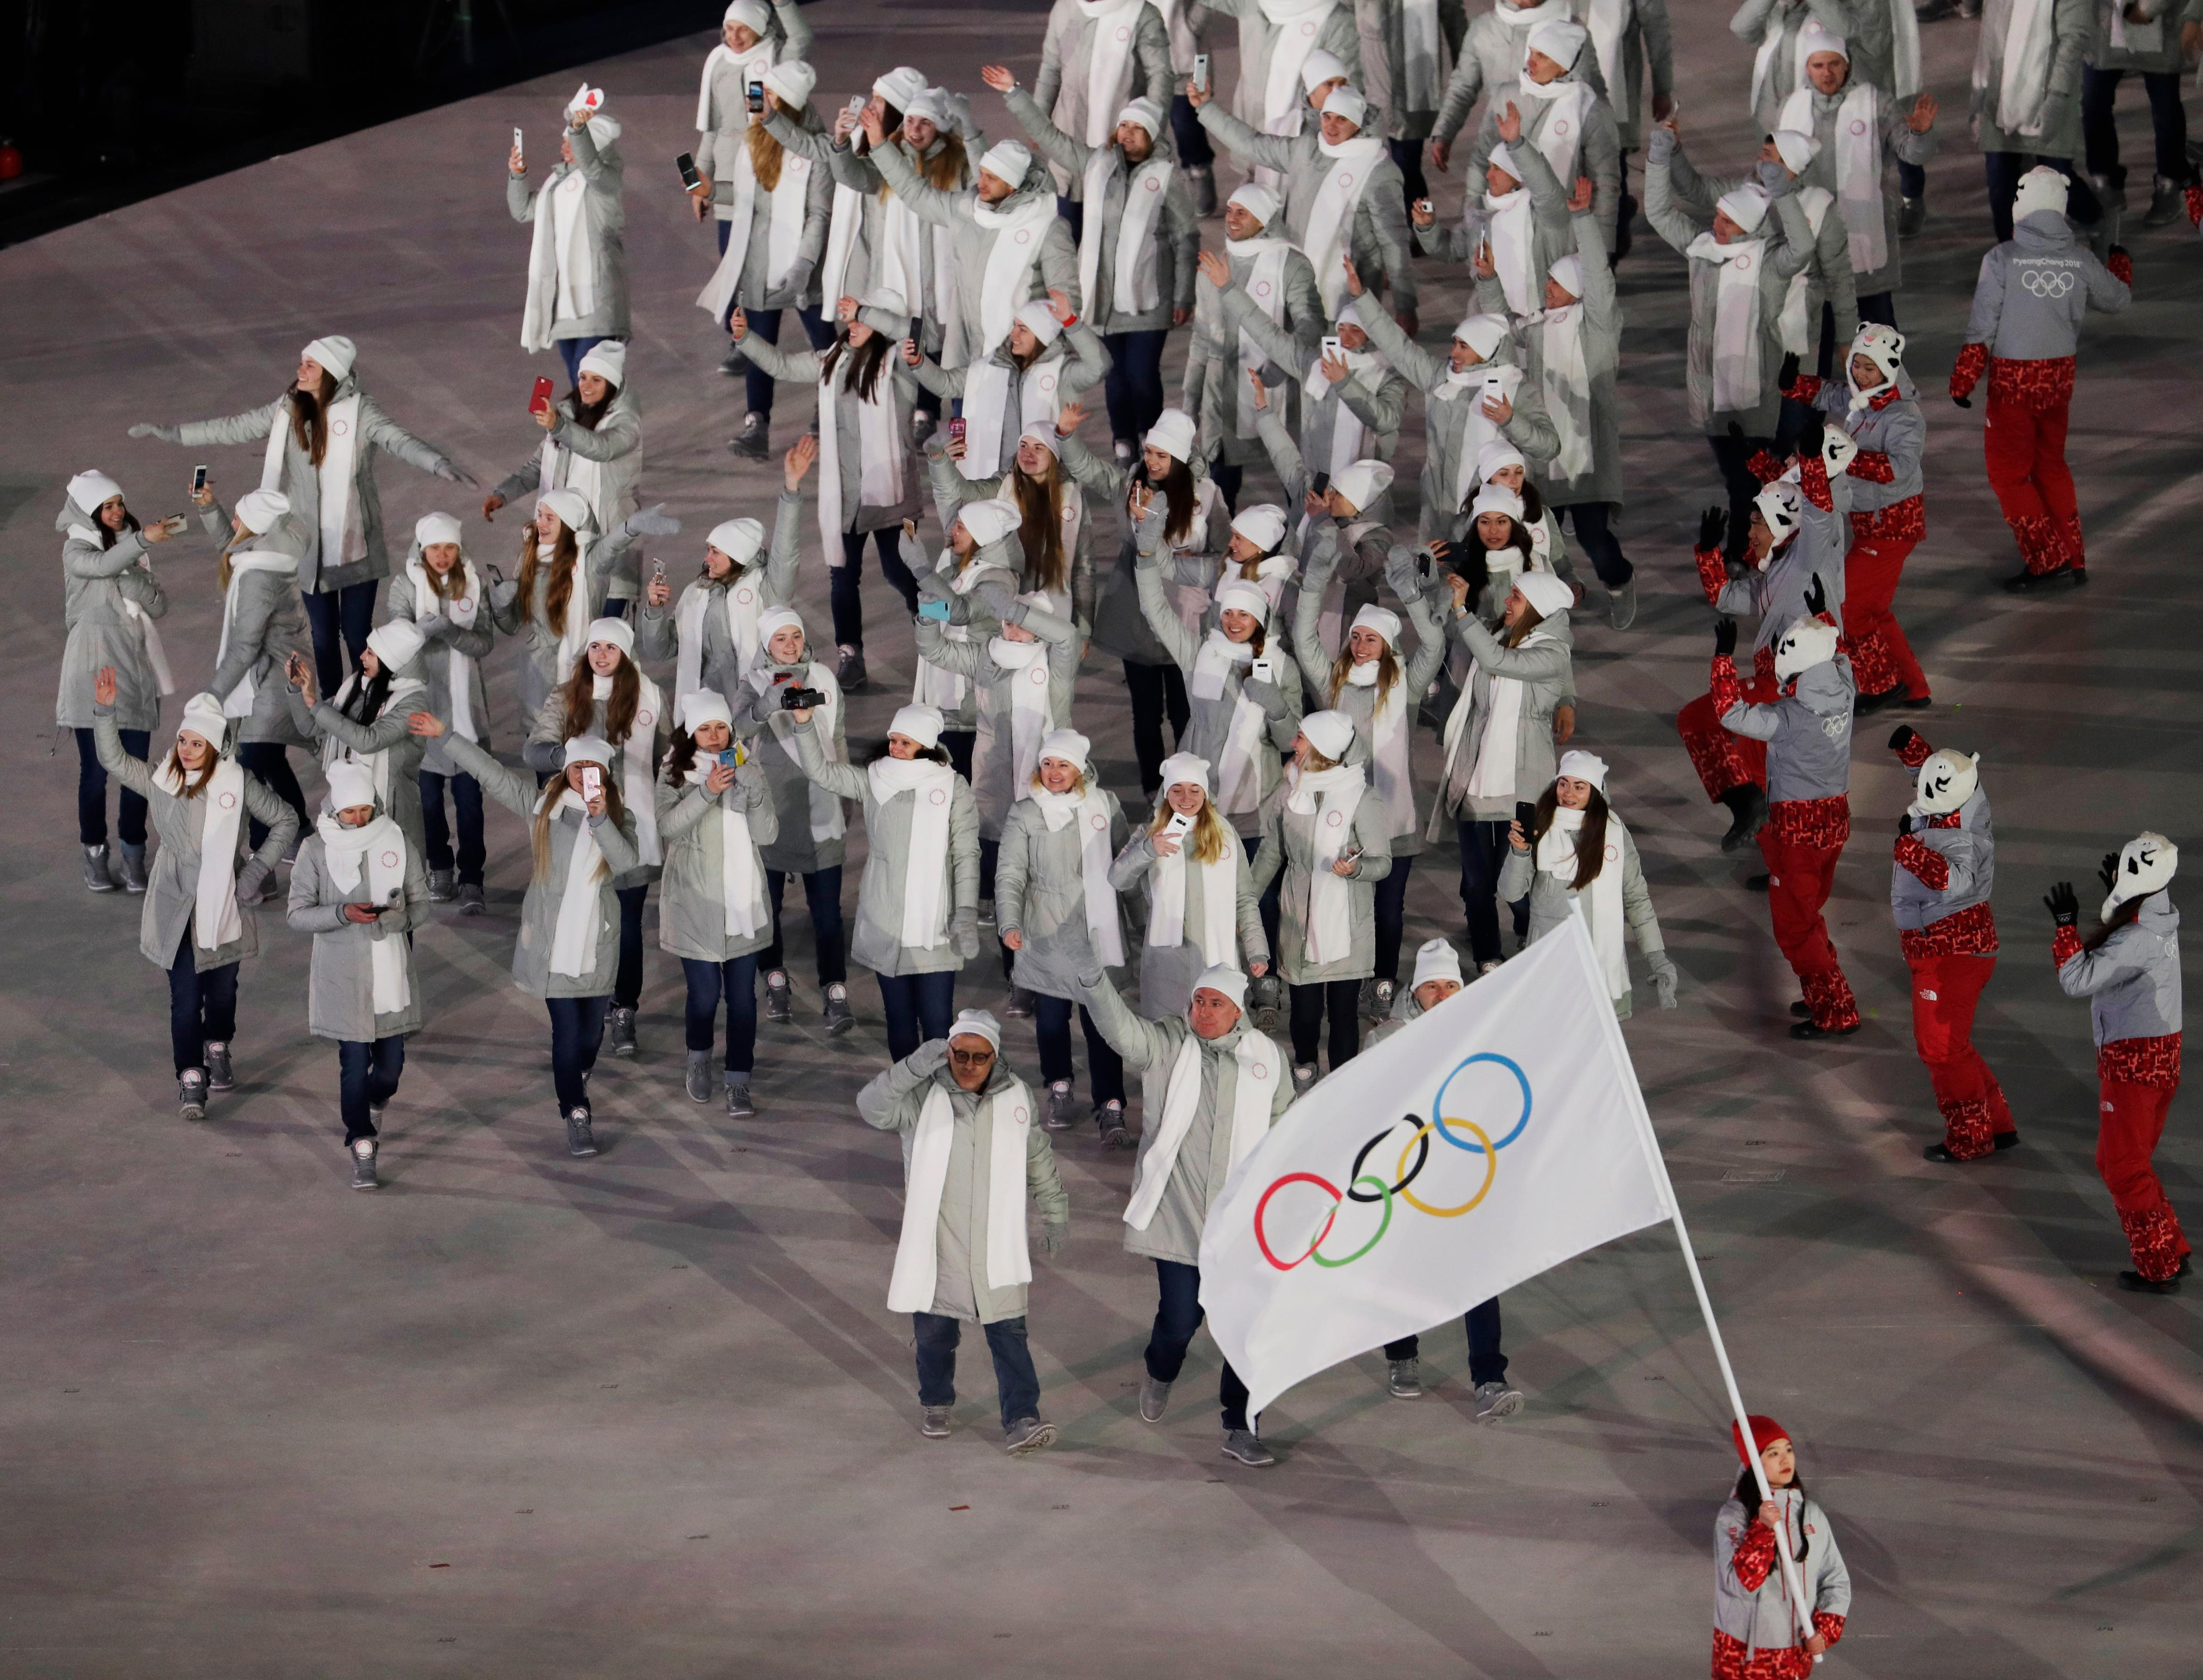 Russian athletes arrive during the opening ceremony of the 2018 Winter Olympics in Pyeongchang, South Korea, Friday, Feb. 9, 2018. (AP Photo/Natacha Pisarenko)